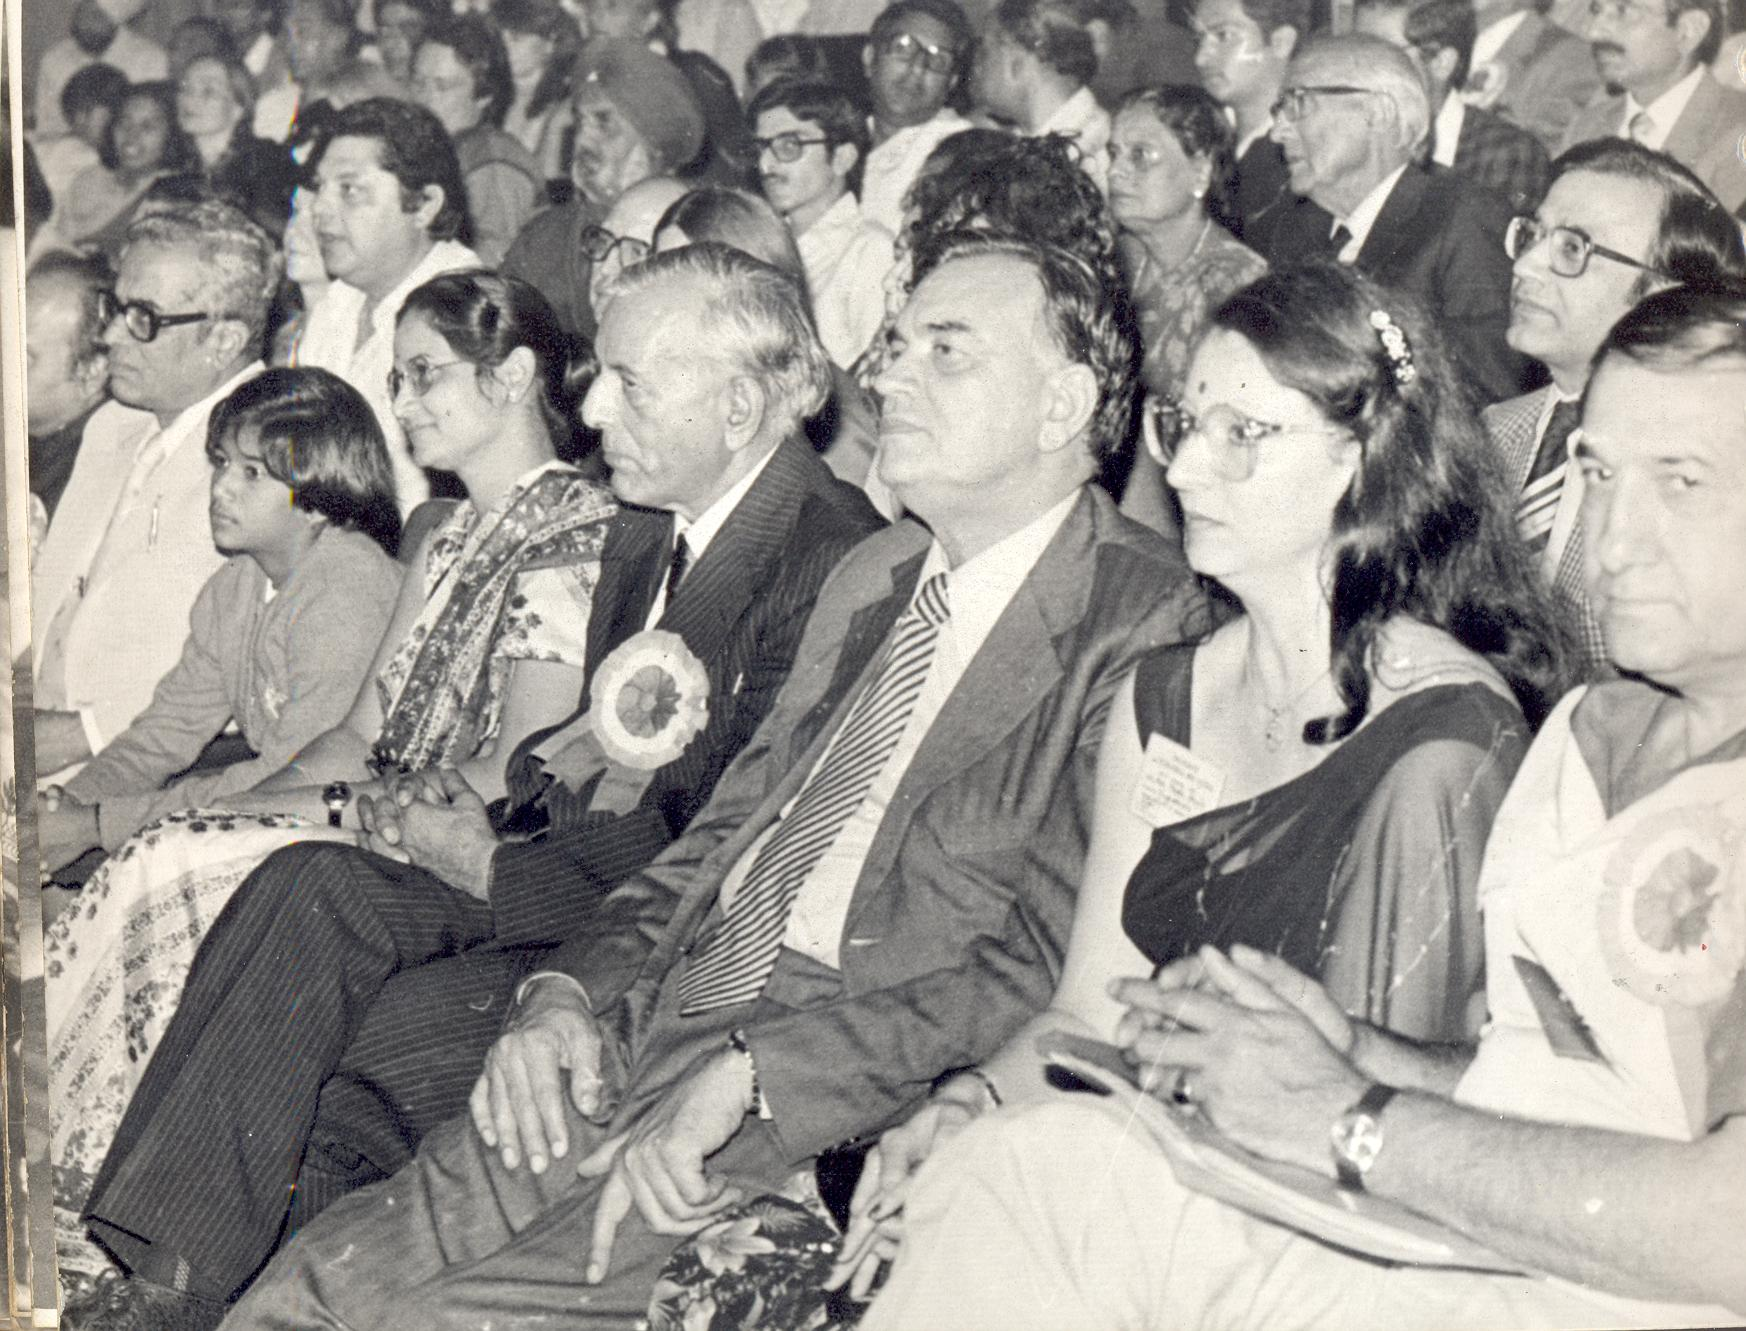 18. W.R.Rishi with other Roma Leaders enjoying the festival